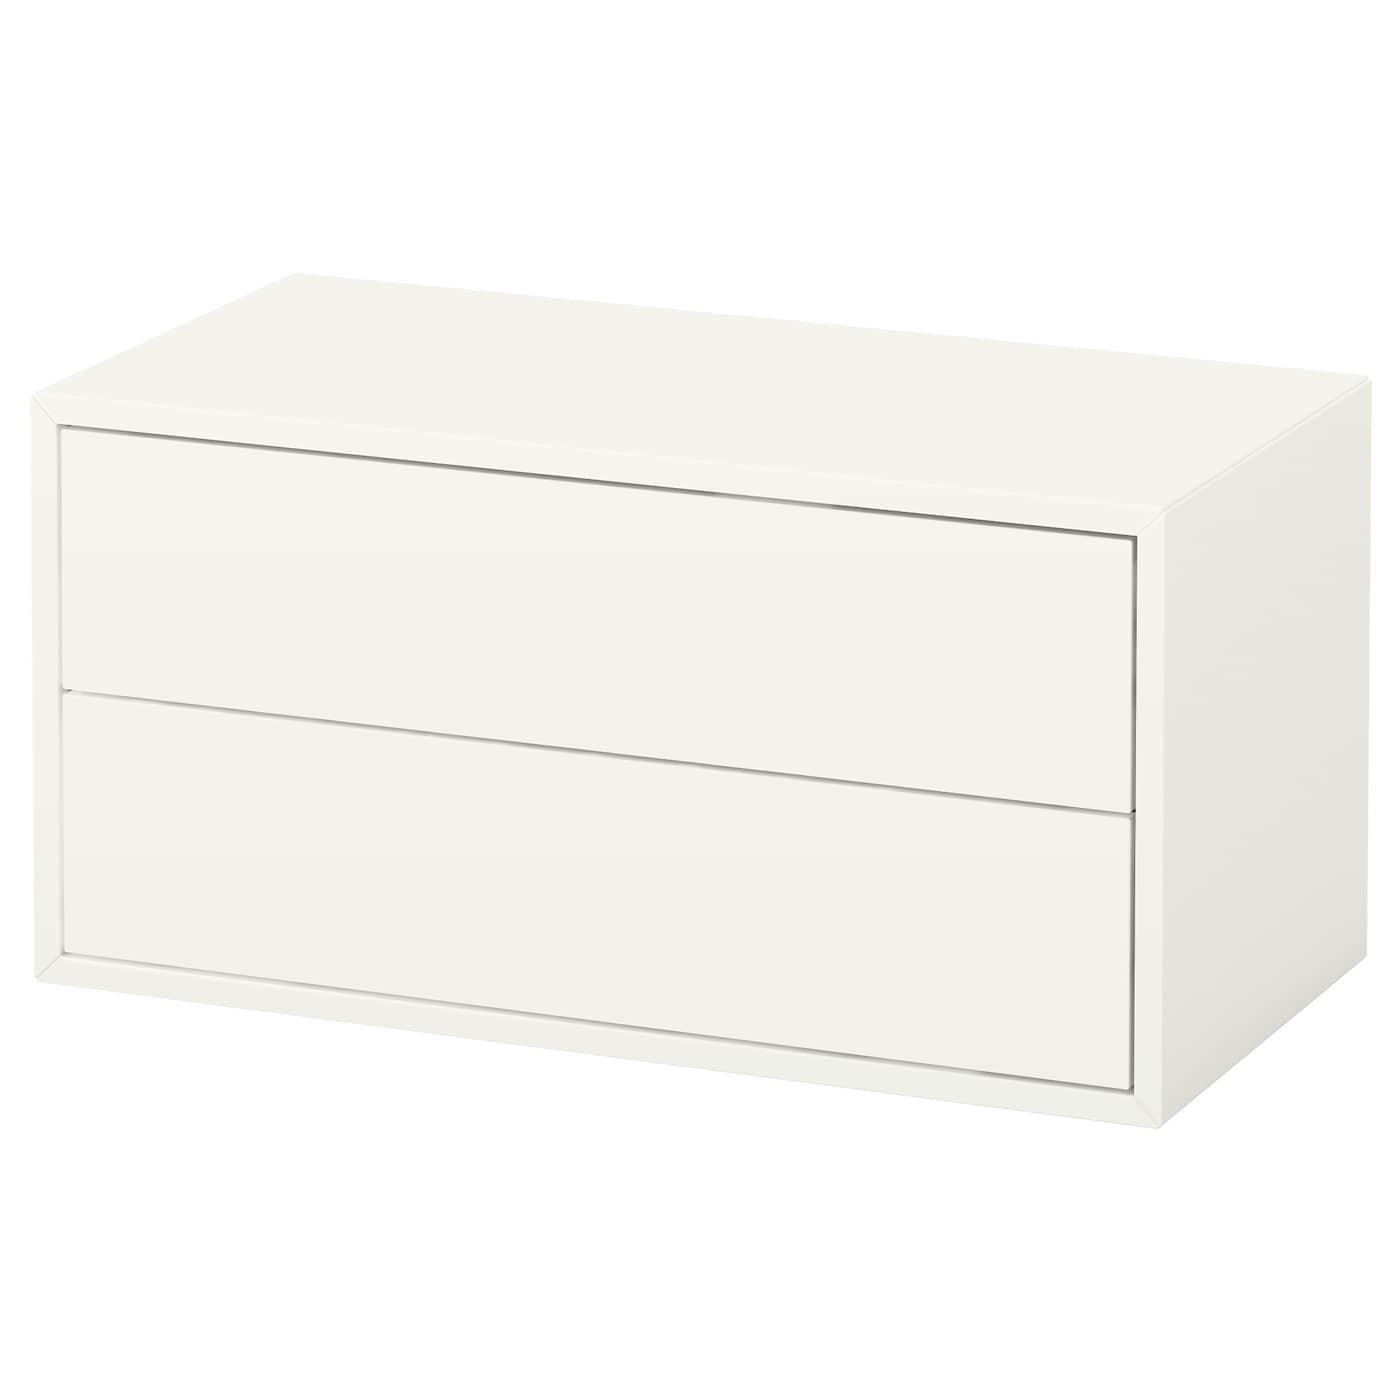 eket rangement 2 tiroirs blanc 70x35x35 cm ikea. Black Bedroom Furniture Sets. Home Design Ideas